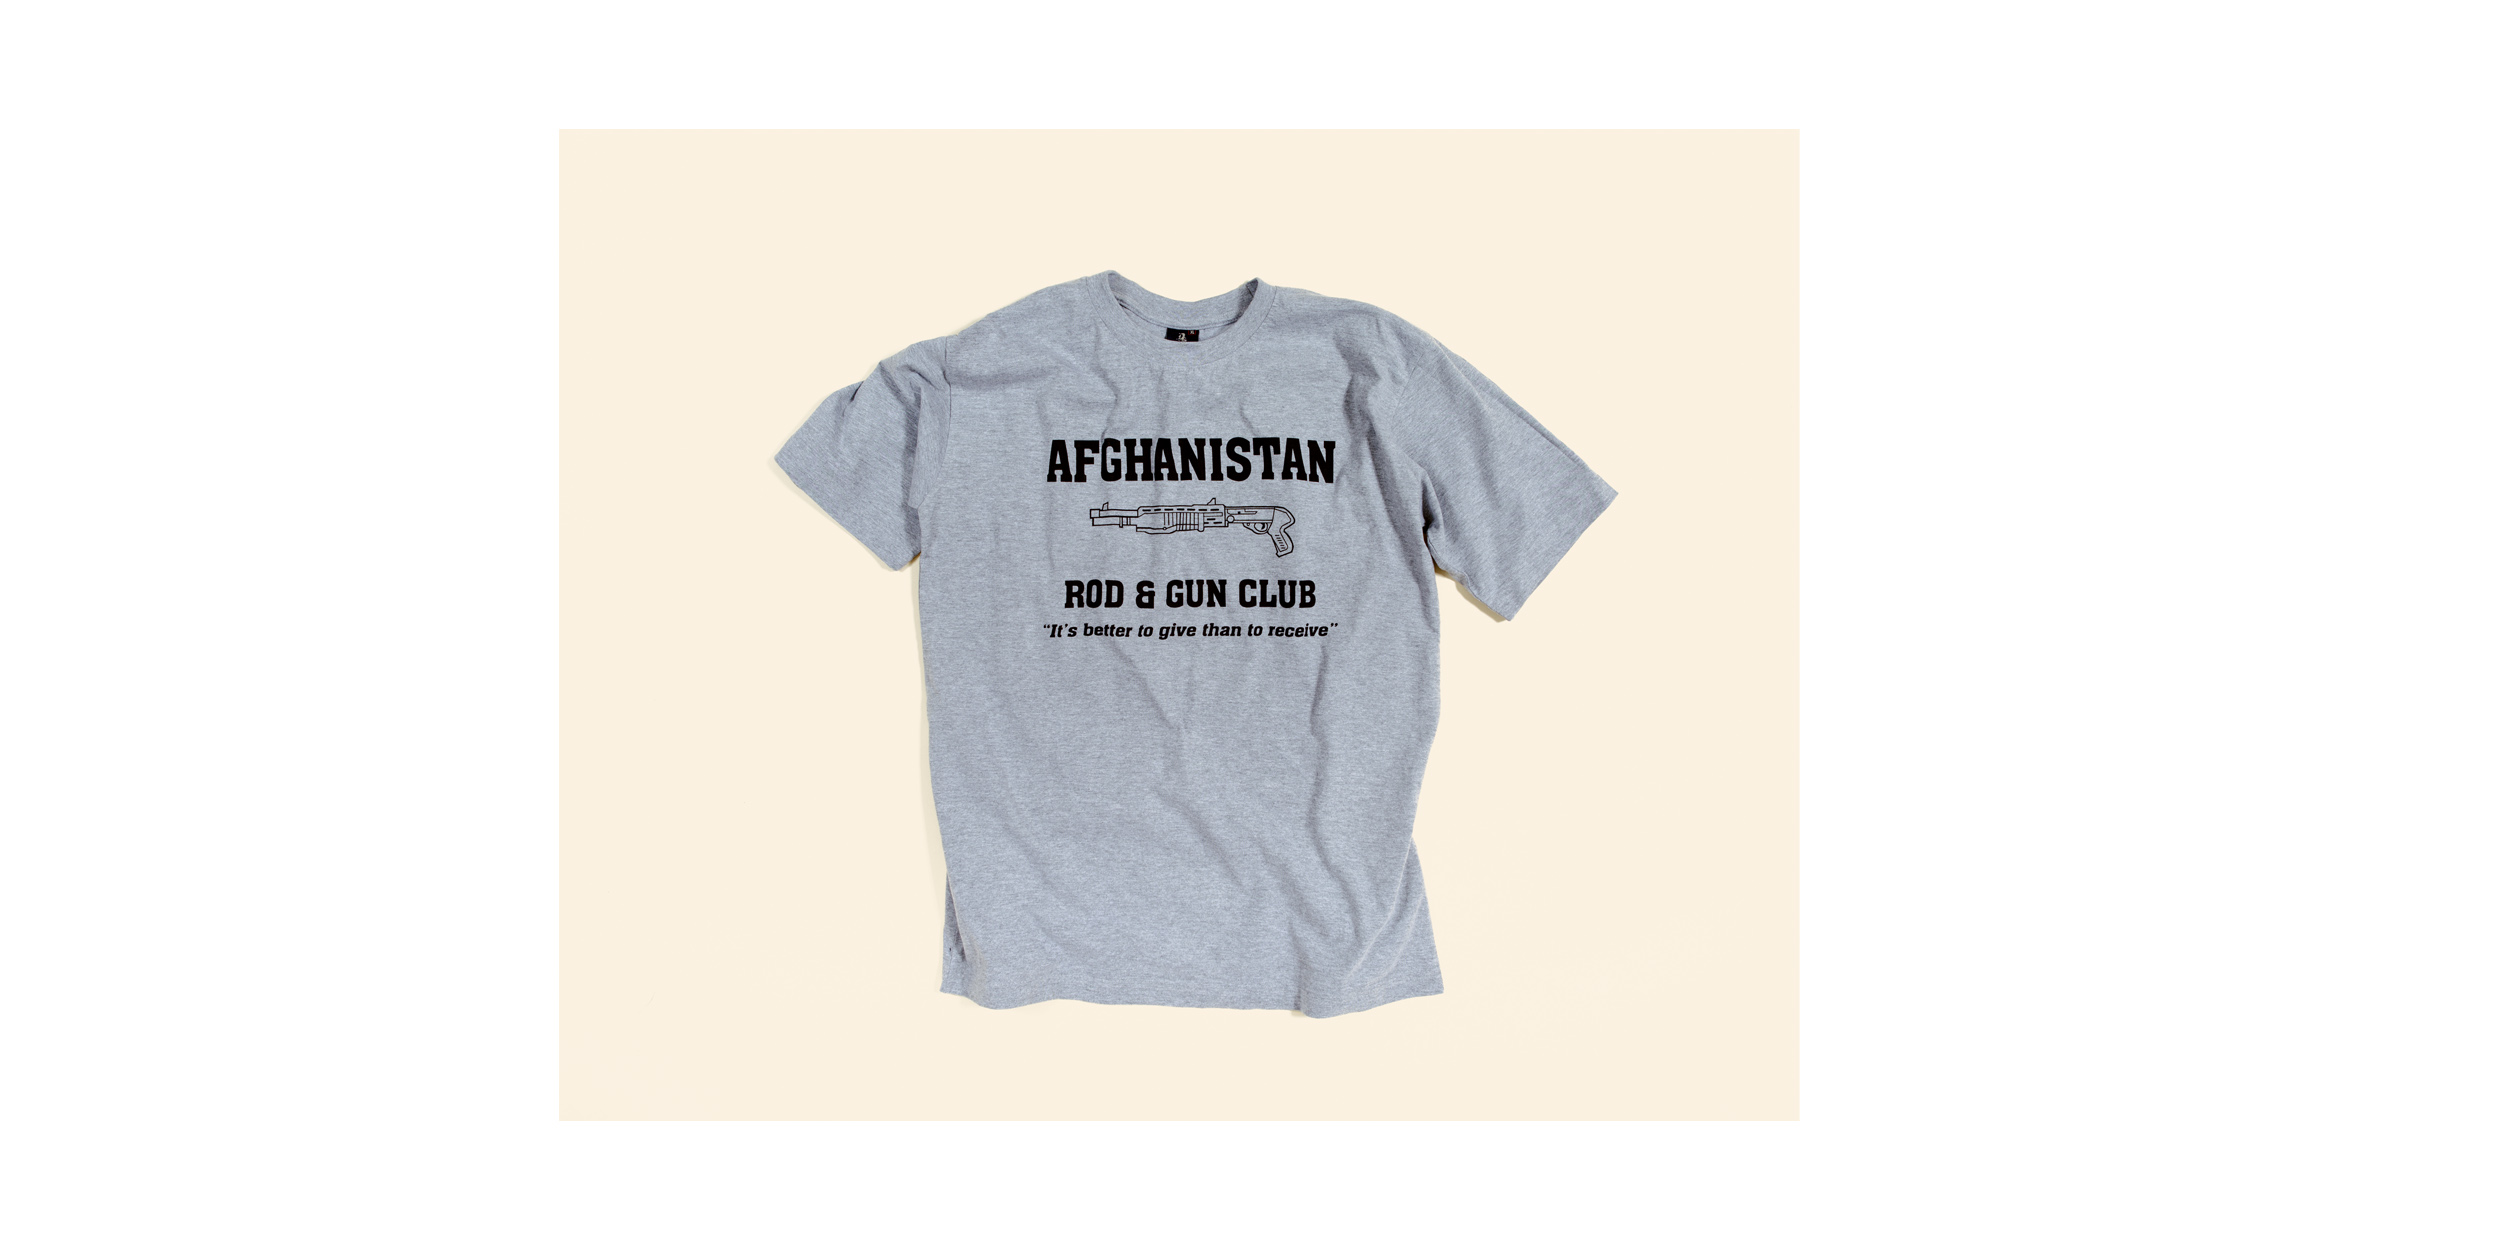 """""""Afghanistan Rod & Gun Club - It's better to give than to receive"""" T-shirt sold in a gift shop at """"The Boardwalk"""", the social center of Kandahar Airfield, which offers Western style cafes, gift shops, restaurants and sports fields. The shirt has become popular with soldiers on the front line and their supporters back home."""